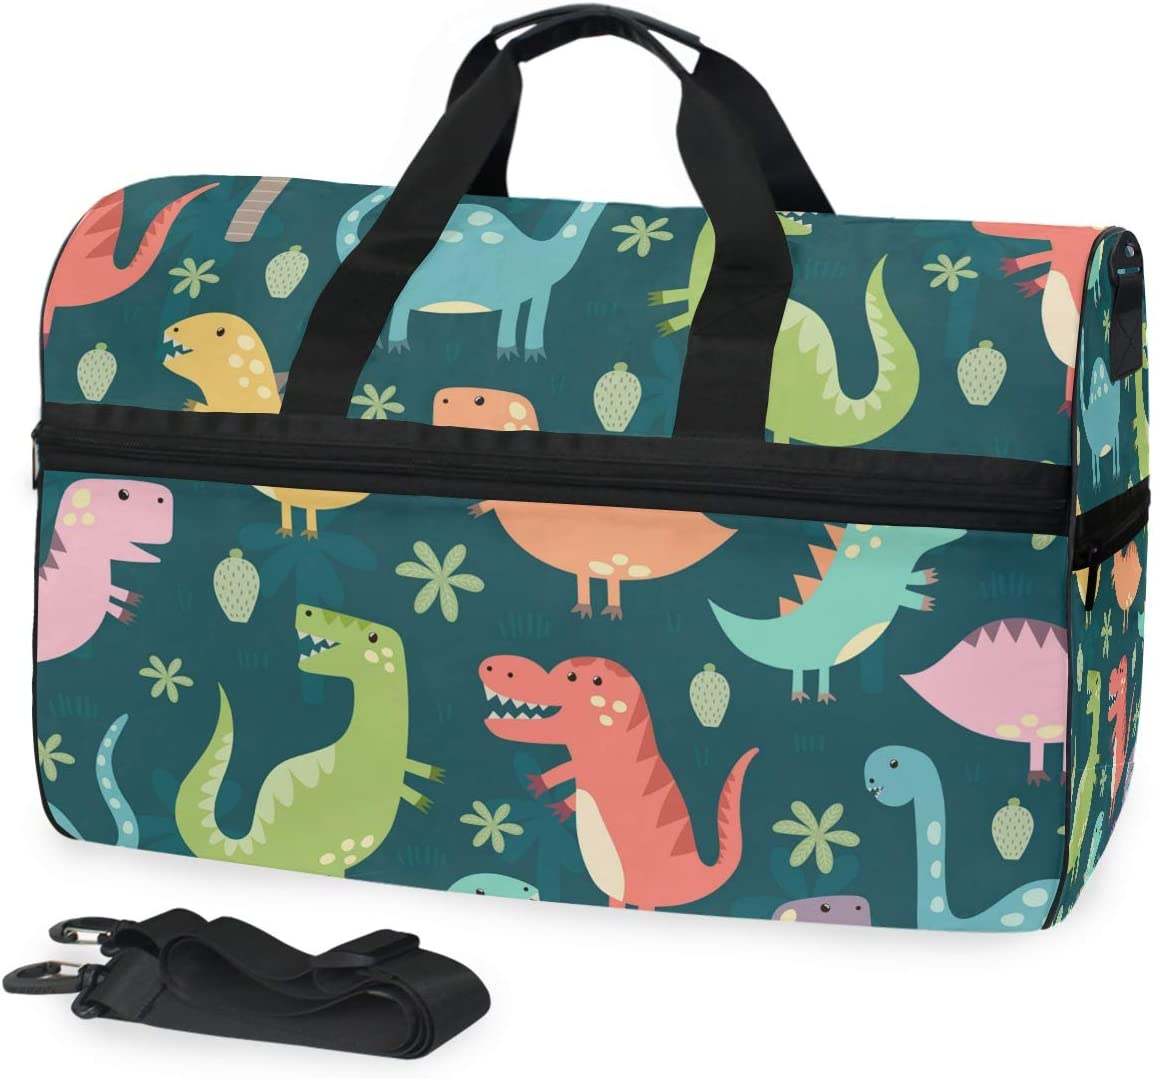 Dinosaur Cute Sports Gym Bag with Shoes Compartment Travel Duffel Bag for Men and Women